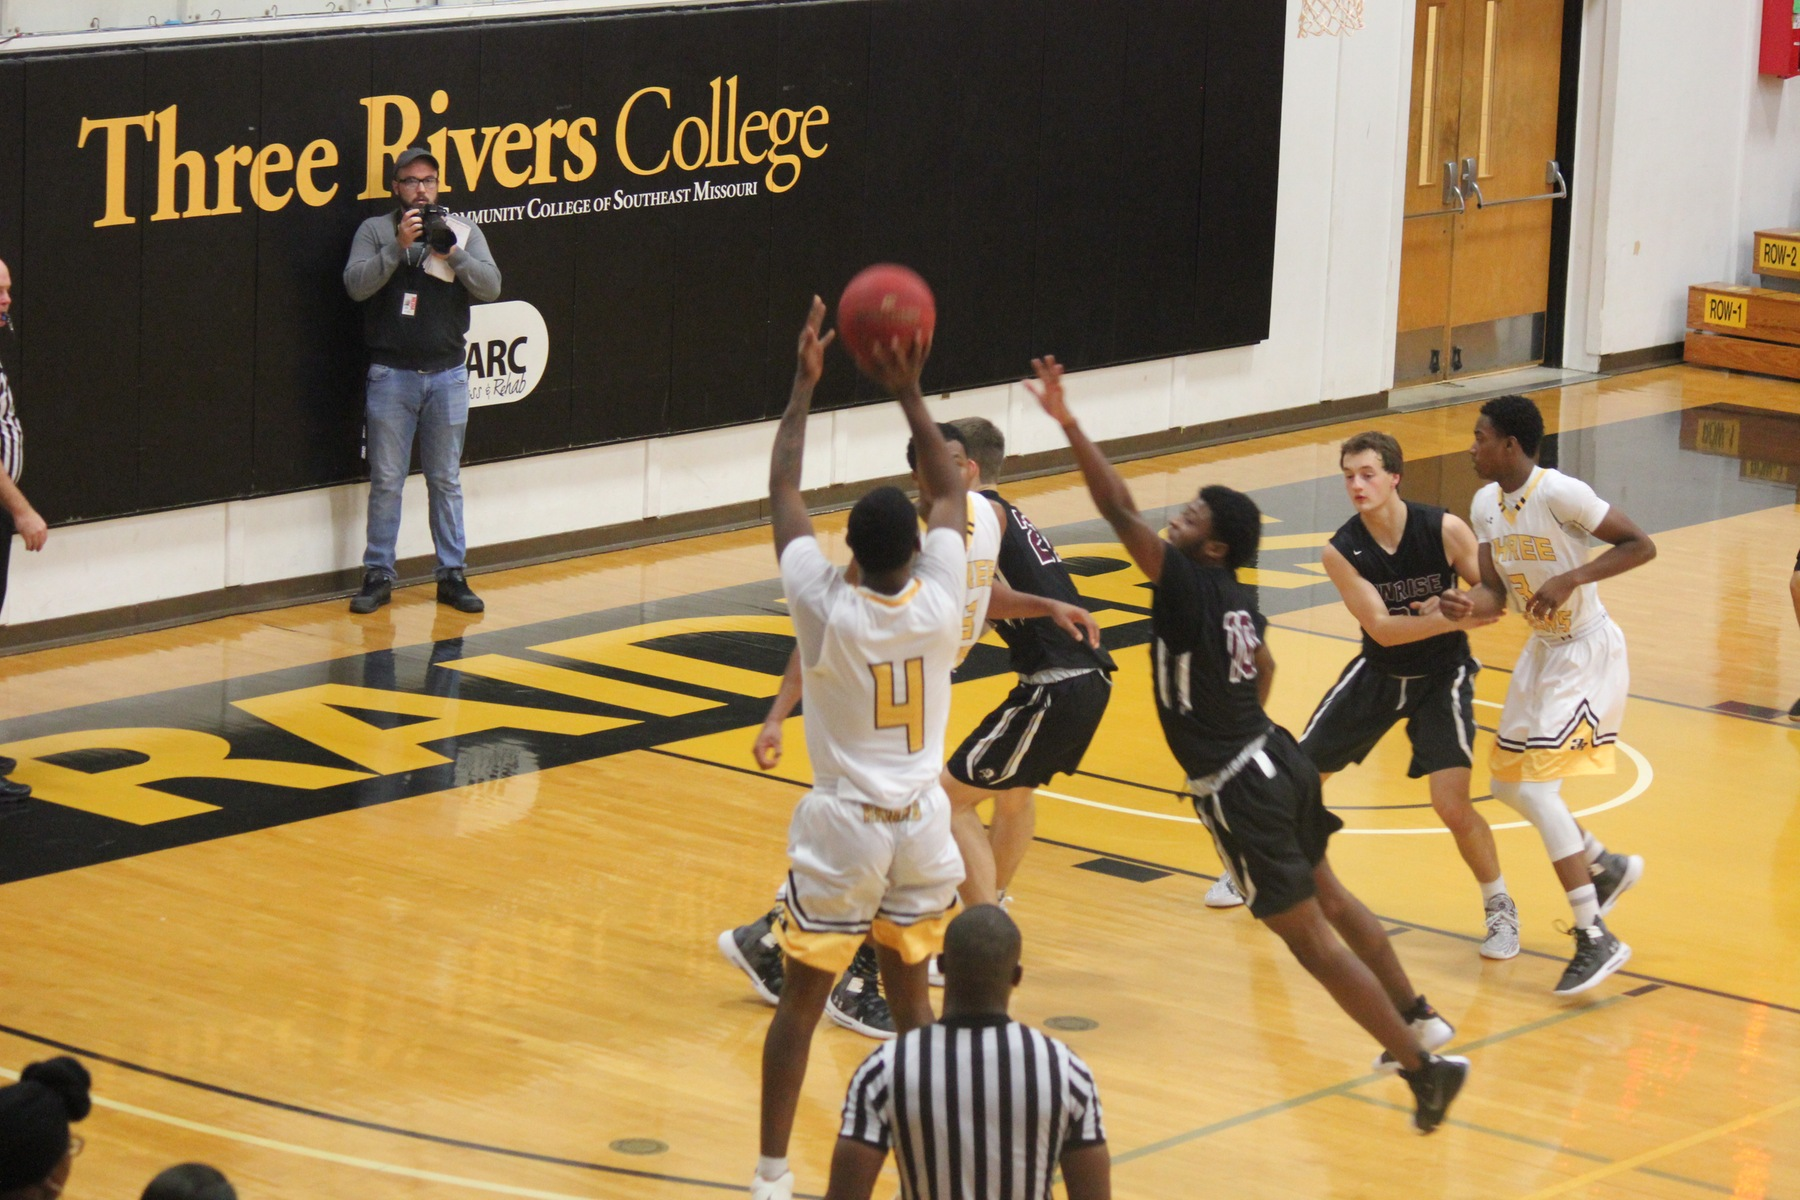 Raiders win big over STLCC with dominating second half